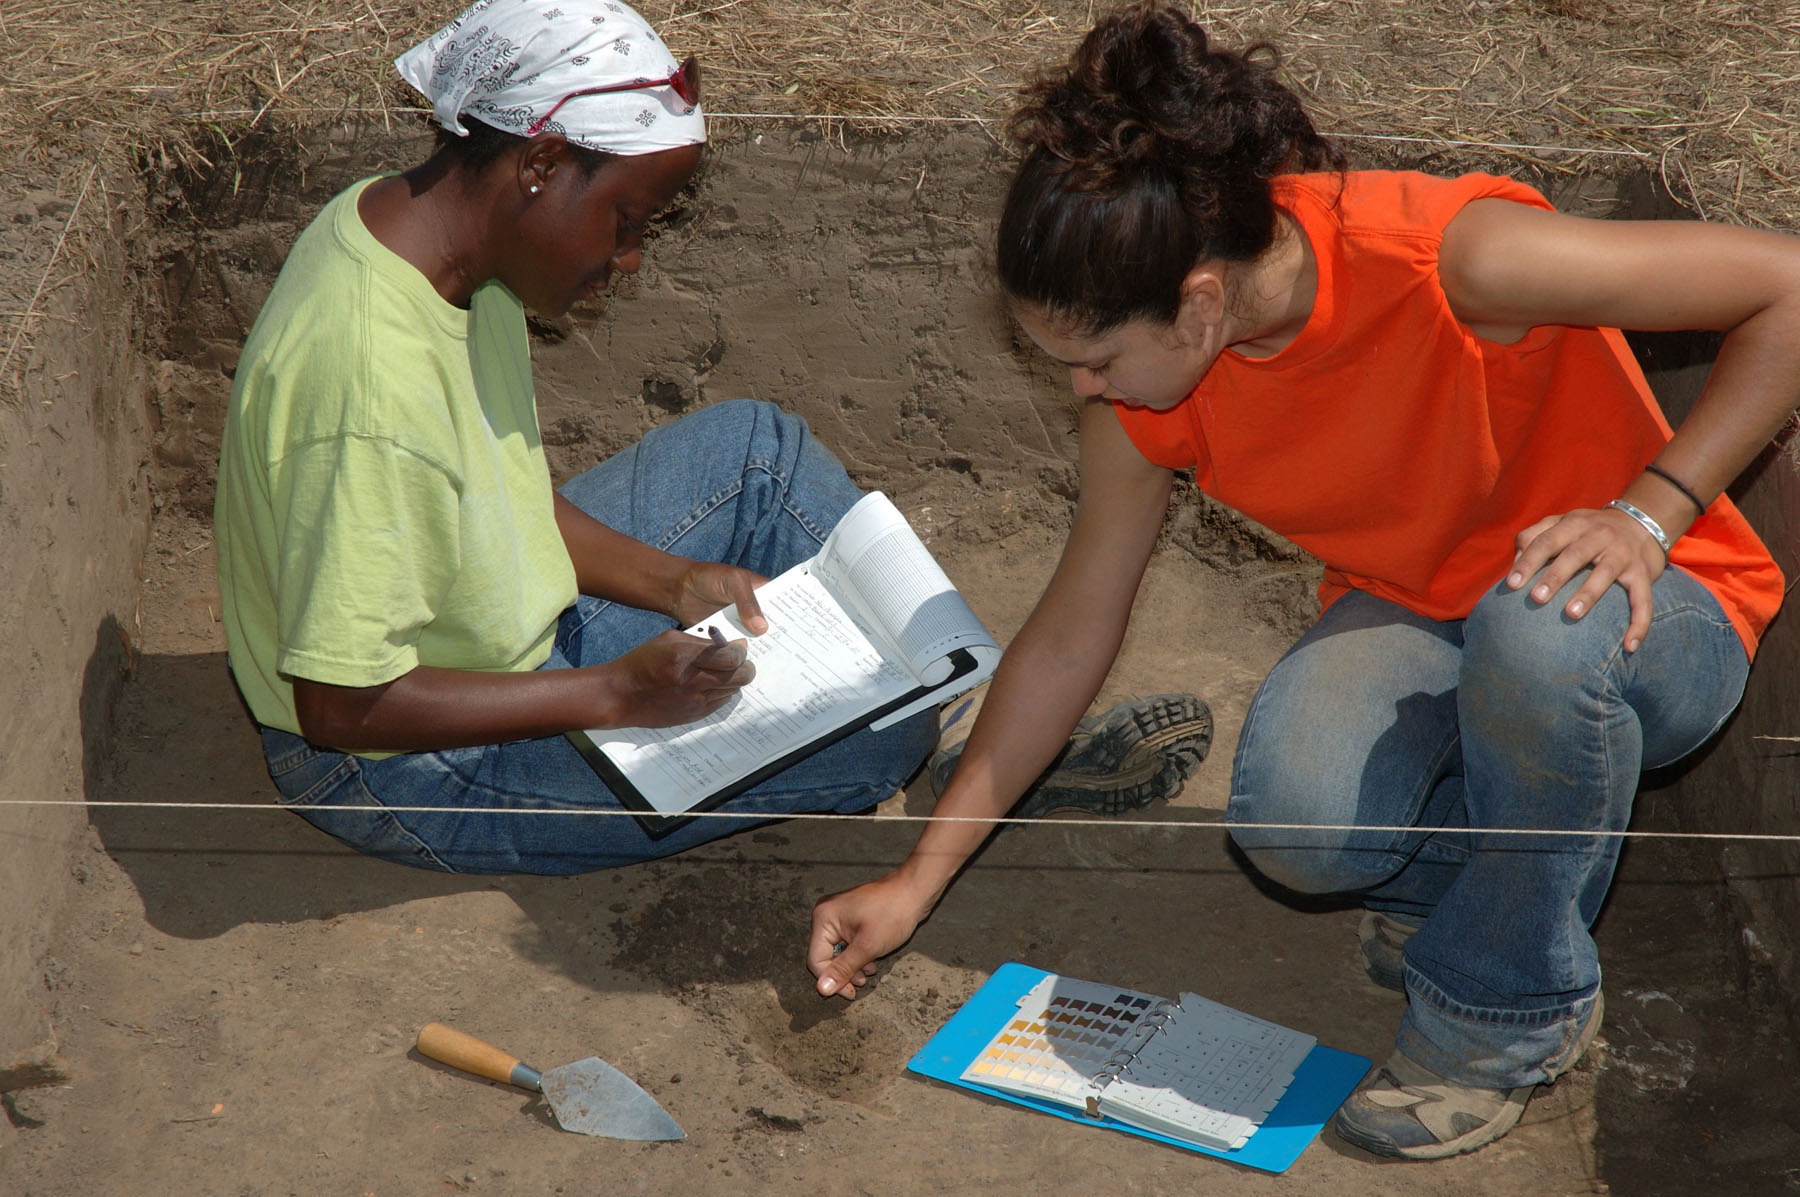 Two women writing on paper in a dirt hole.